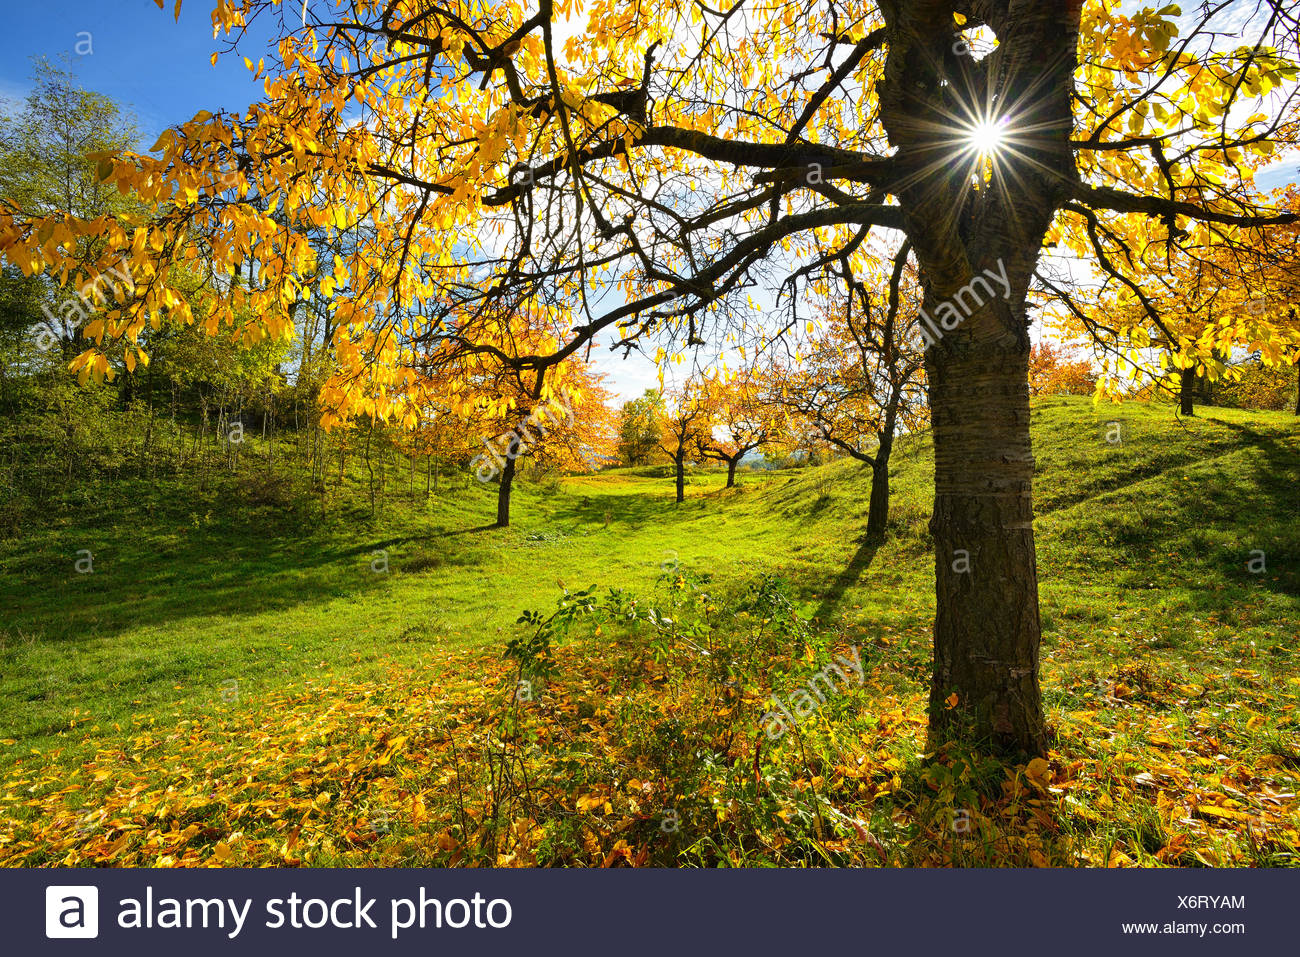 Meadow orchard in autumn, sun radiating in a star shape through cherry, yellow foliage, near Weimar, Thuringia, Germany - Stock Image